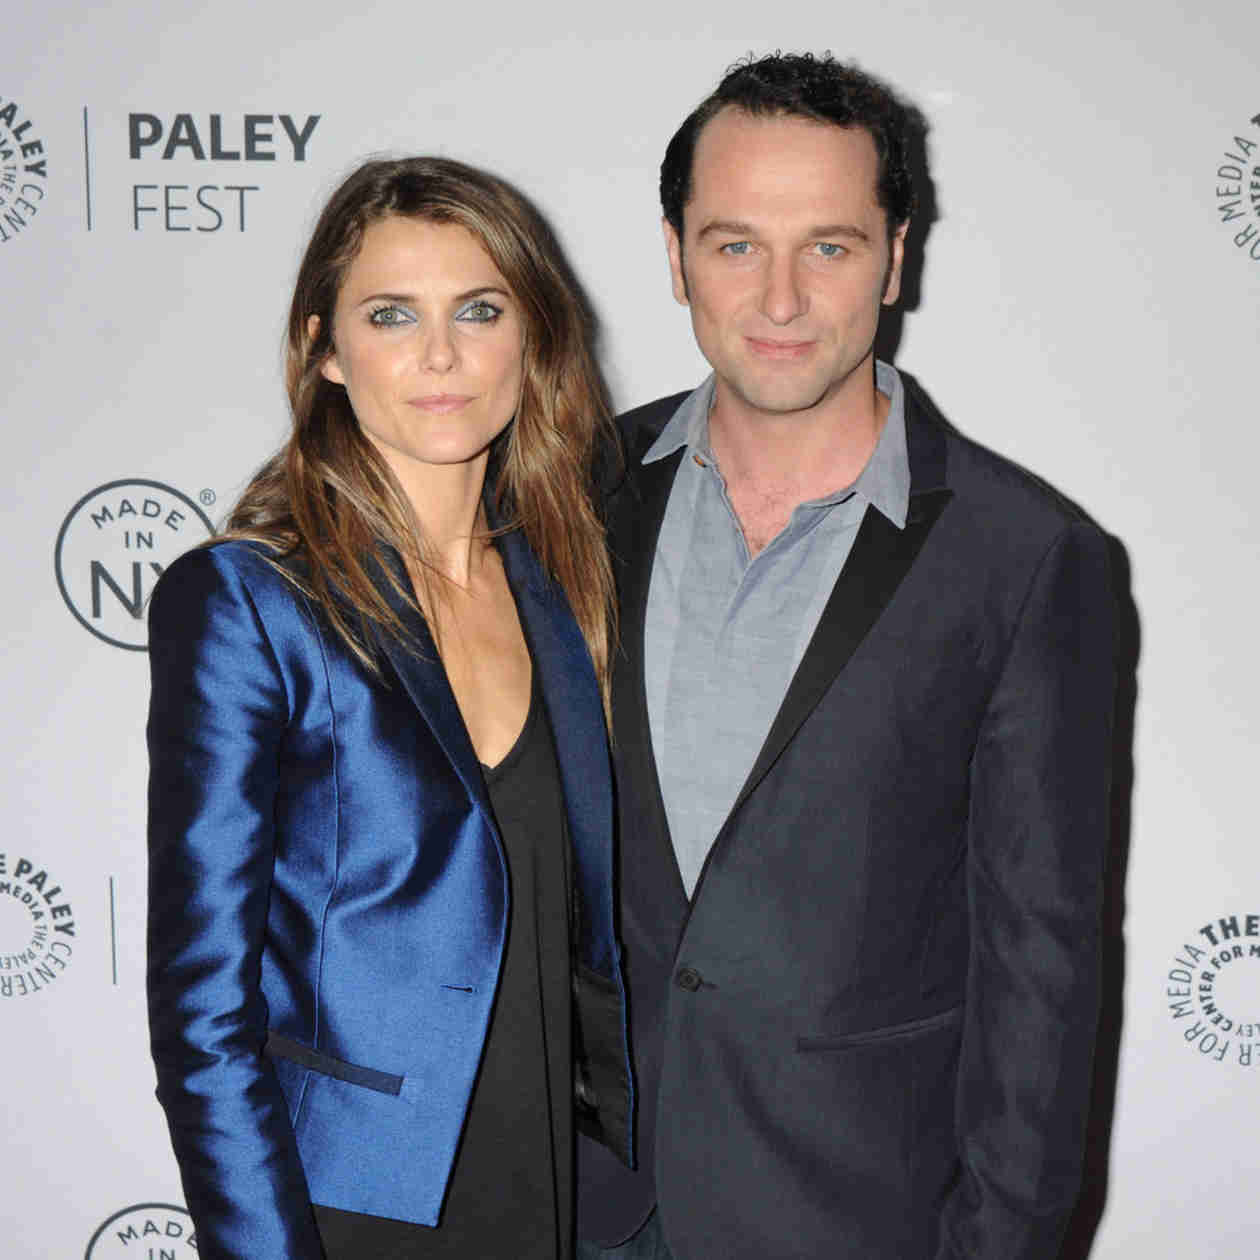 Keri Russell Spotted With Matthew Rhys After Split From Husband: Are The Co-Stars Dating?